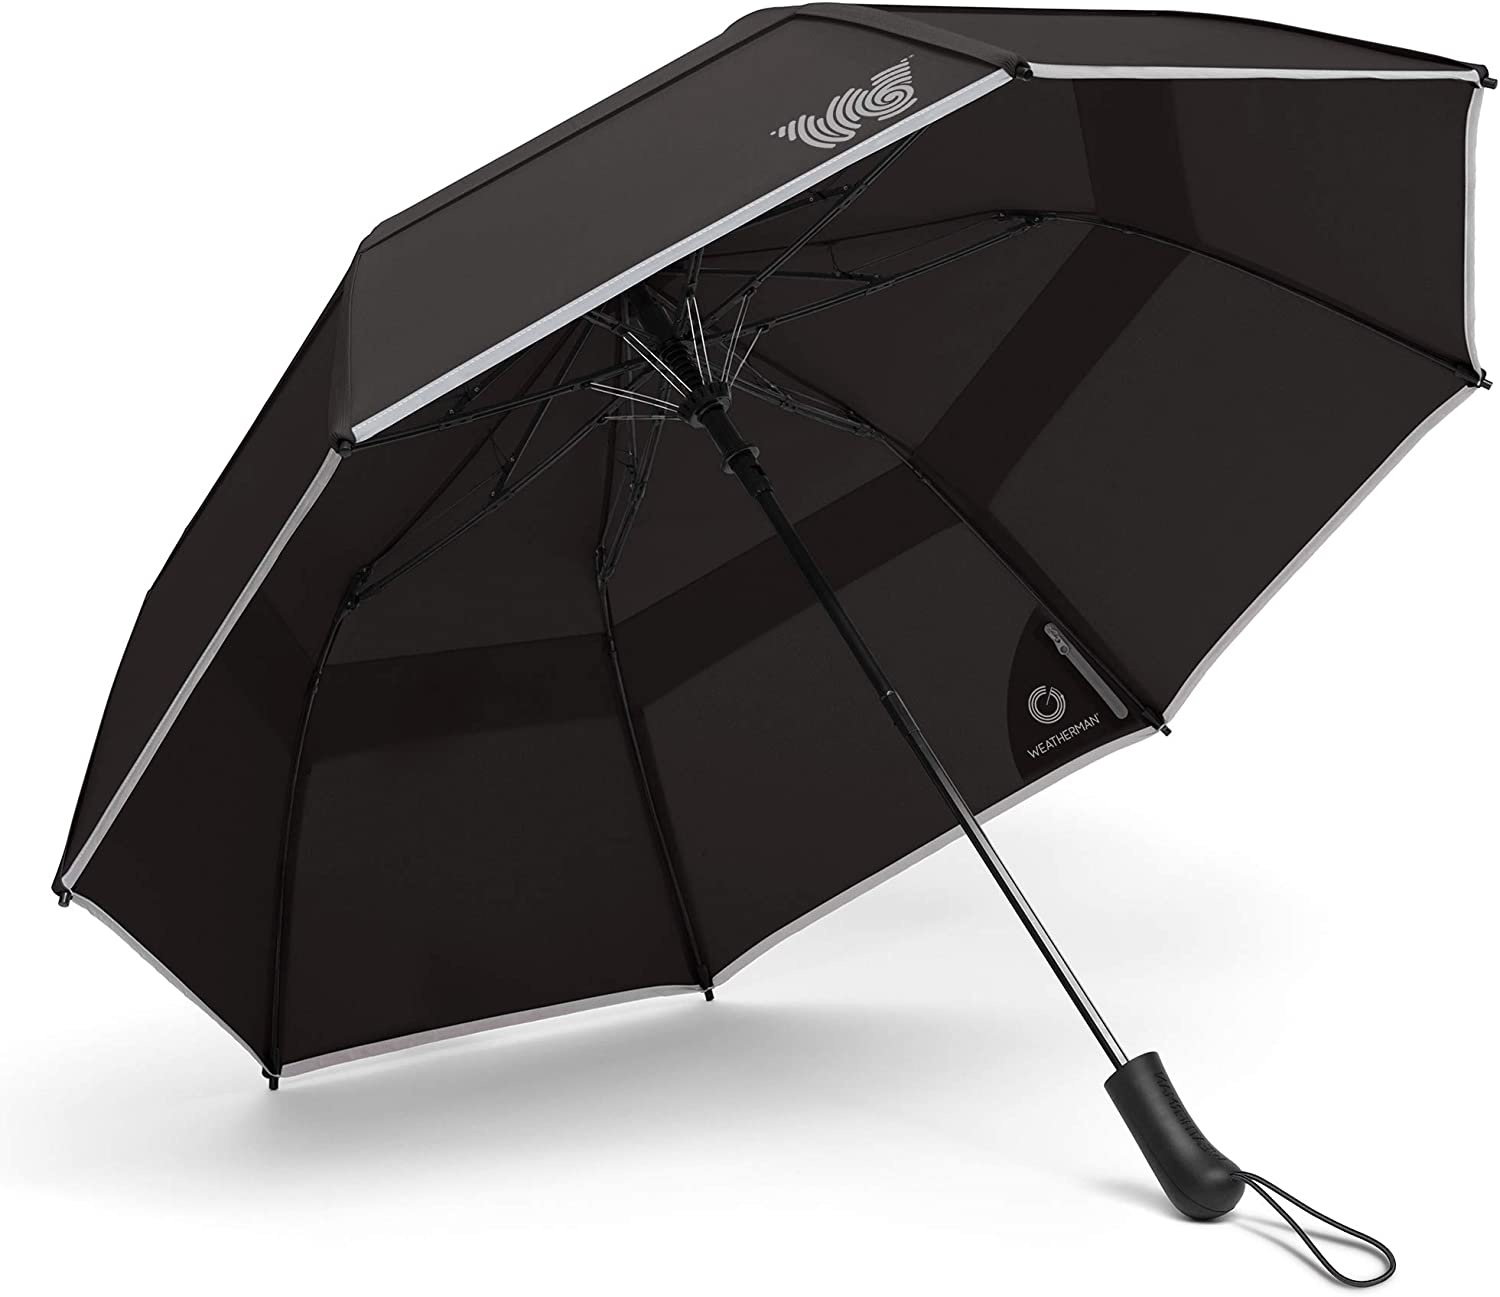 Long-awaited Weatherman Max 48% OFF Umbrella - Collapsible Windproof